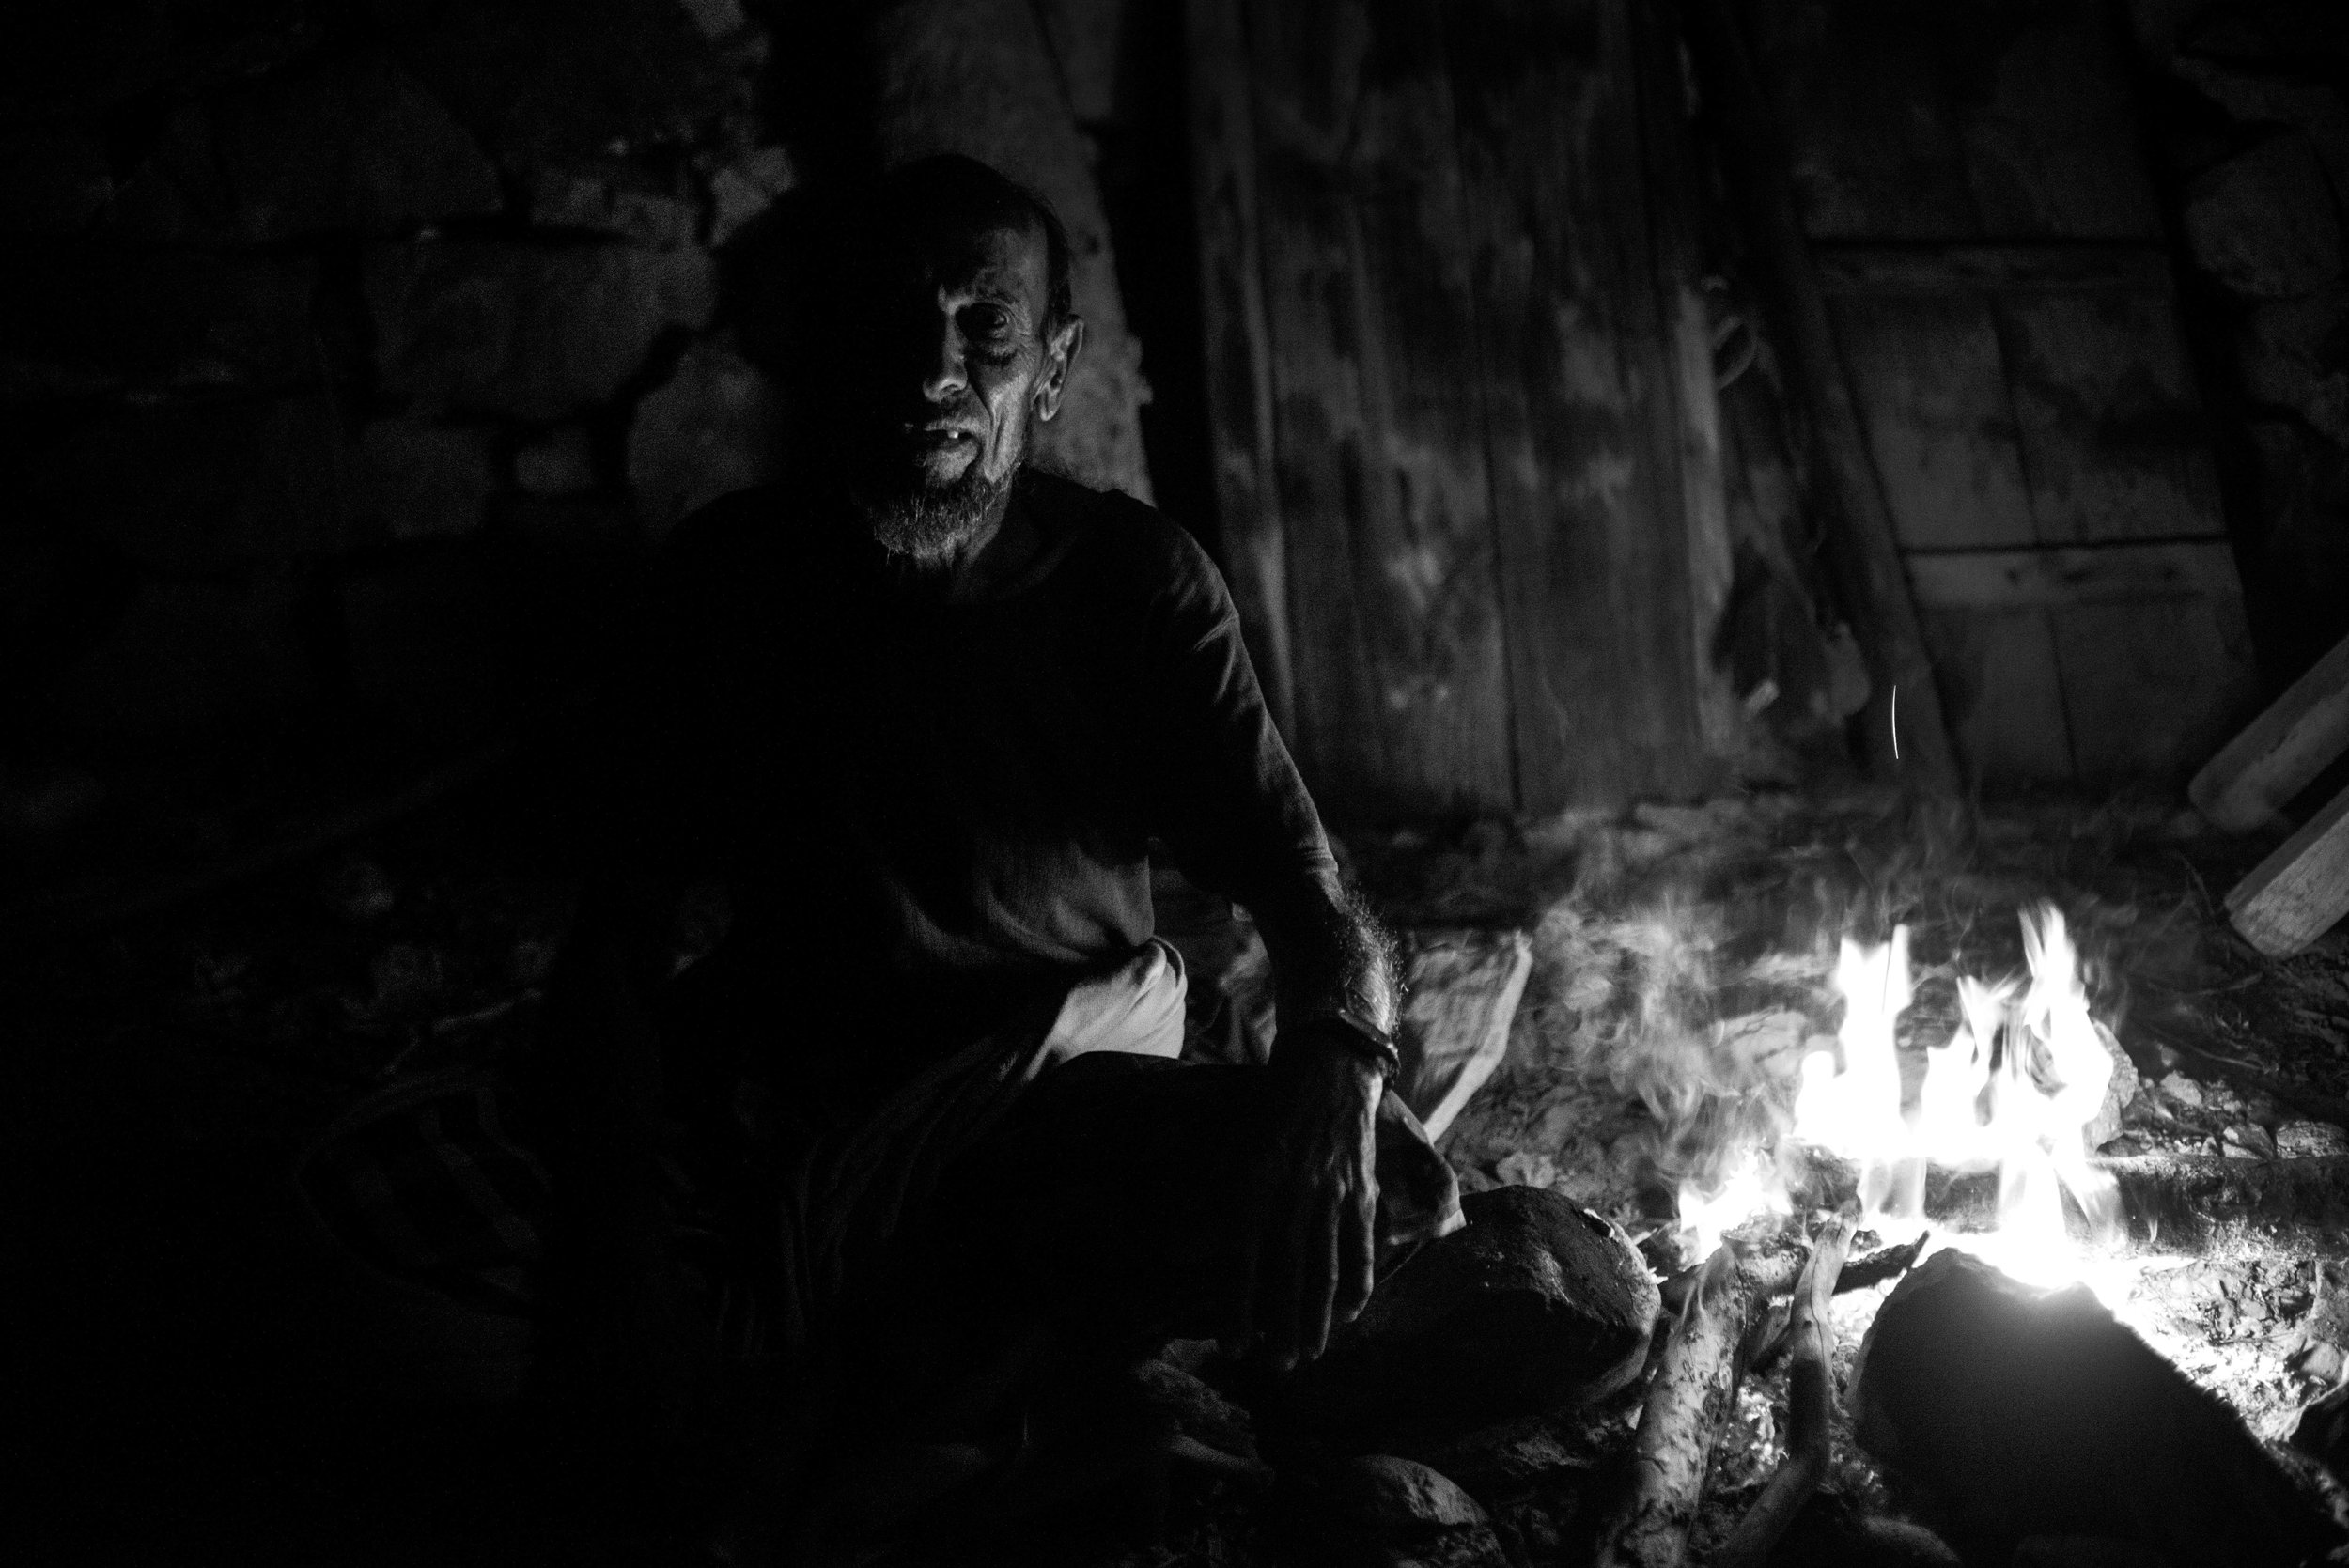 Project Socotra: The invisible Island February 2019 Old Bedouin pose for a picture next to the fire in his house in the Dragon Blood Tree forest. Many people migrate towards the city and the villages along the coast, some still leave high in the mountain, taking care for their goats and leaving as their ancestors once did.